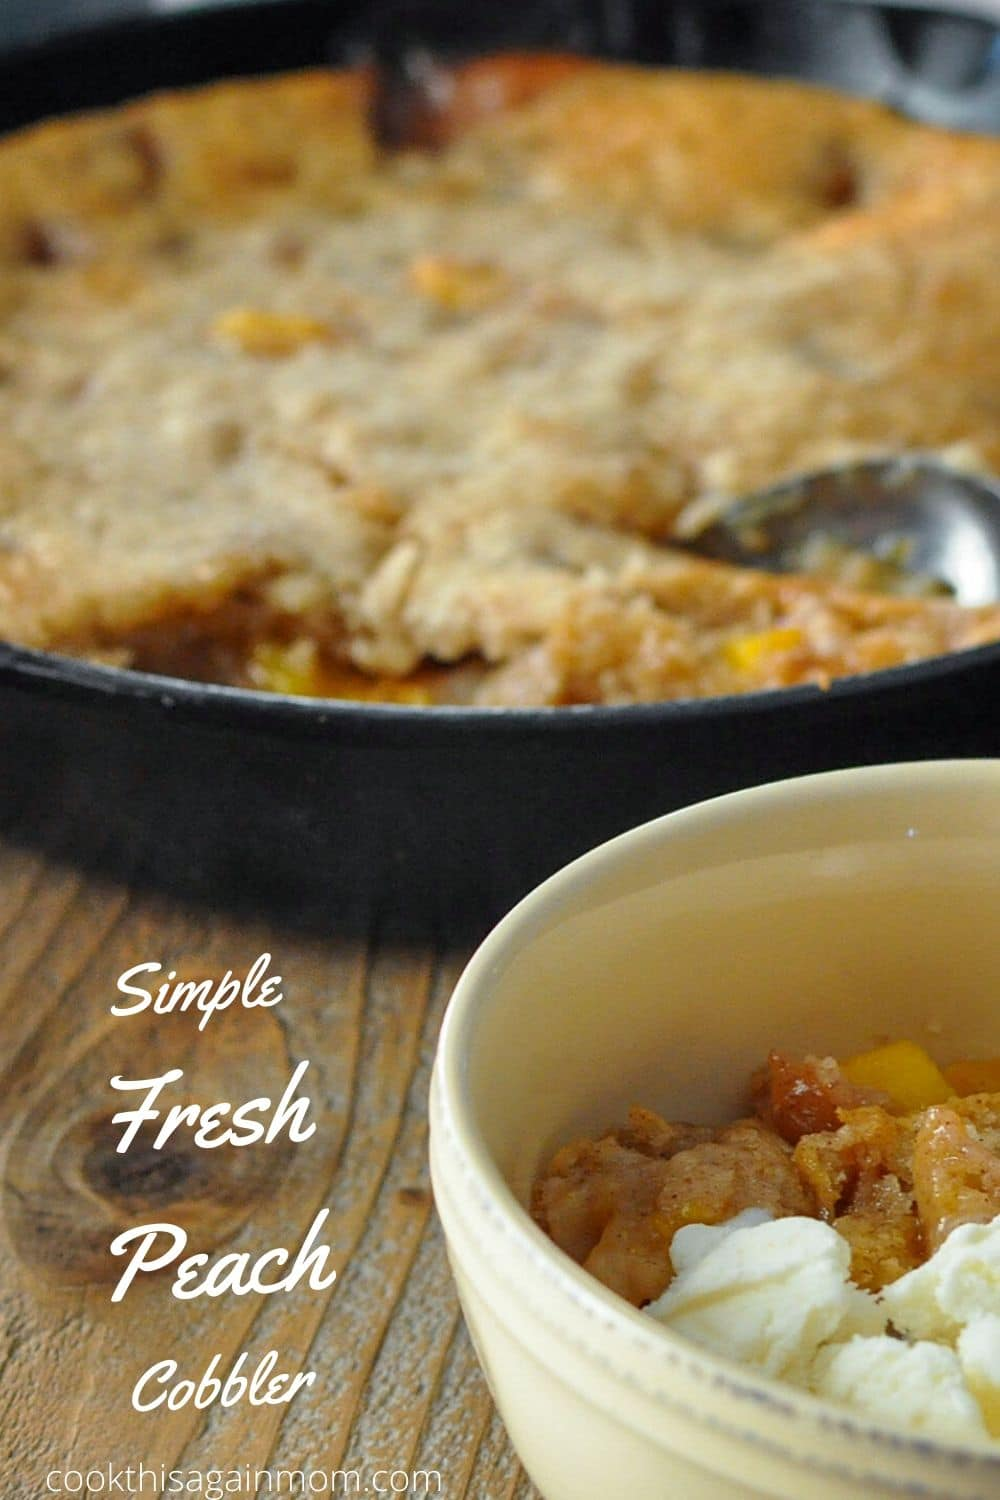 pinterest image featuring fresh peach cobbler in a cast iron skillet and serving bowl